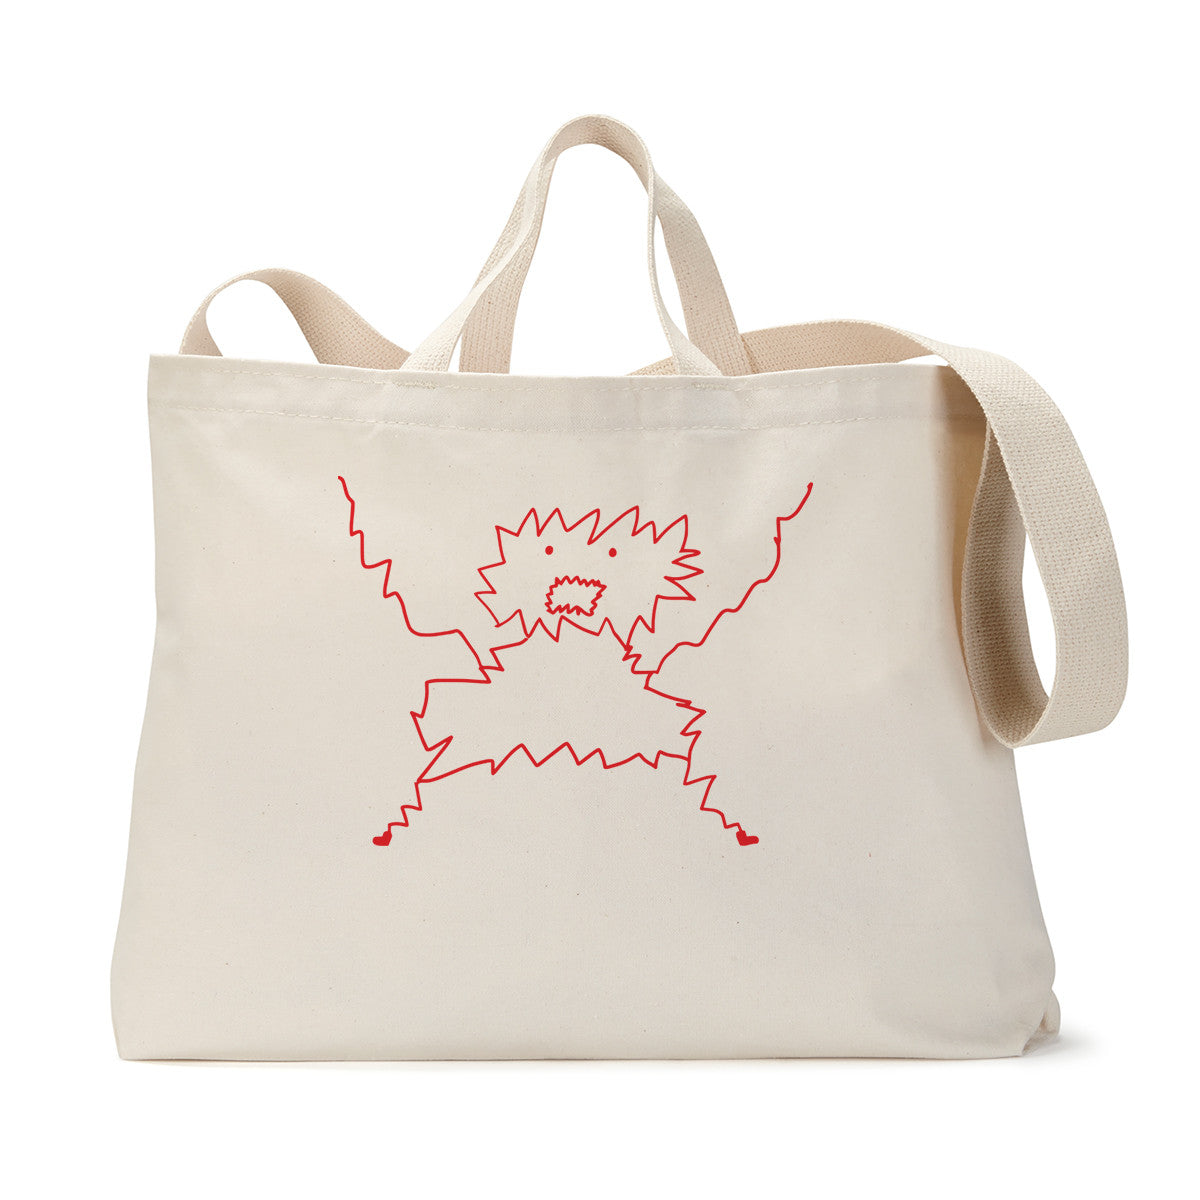 Panic Monster Tote Bag